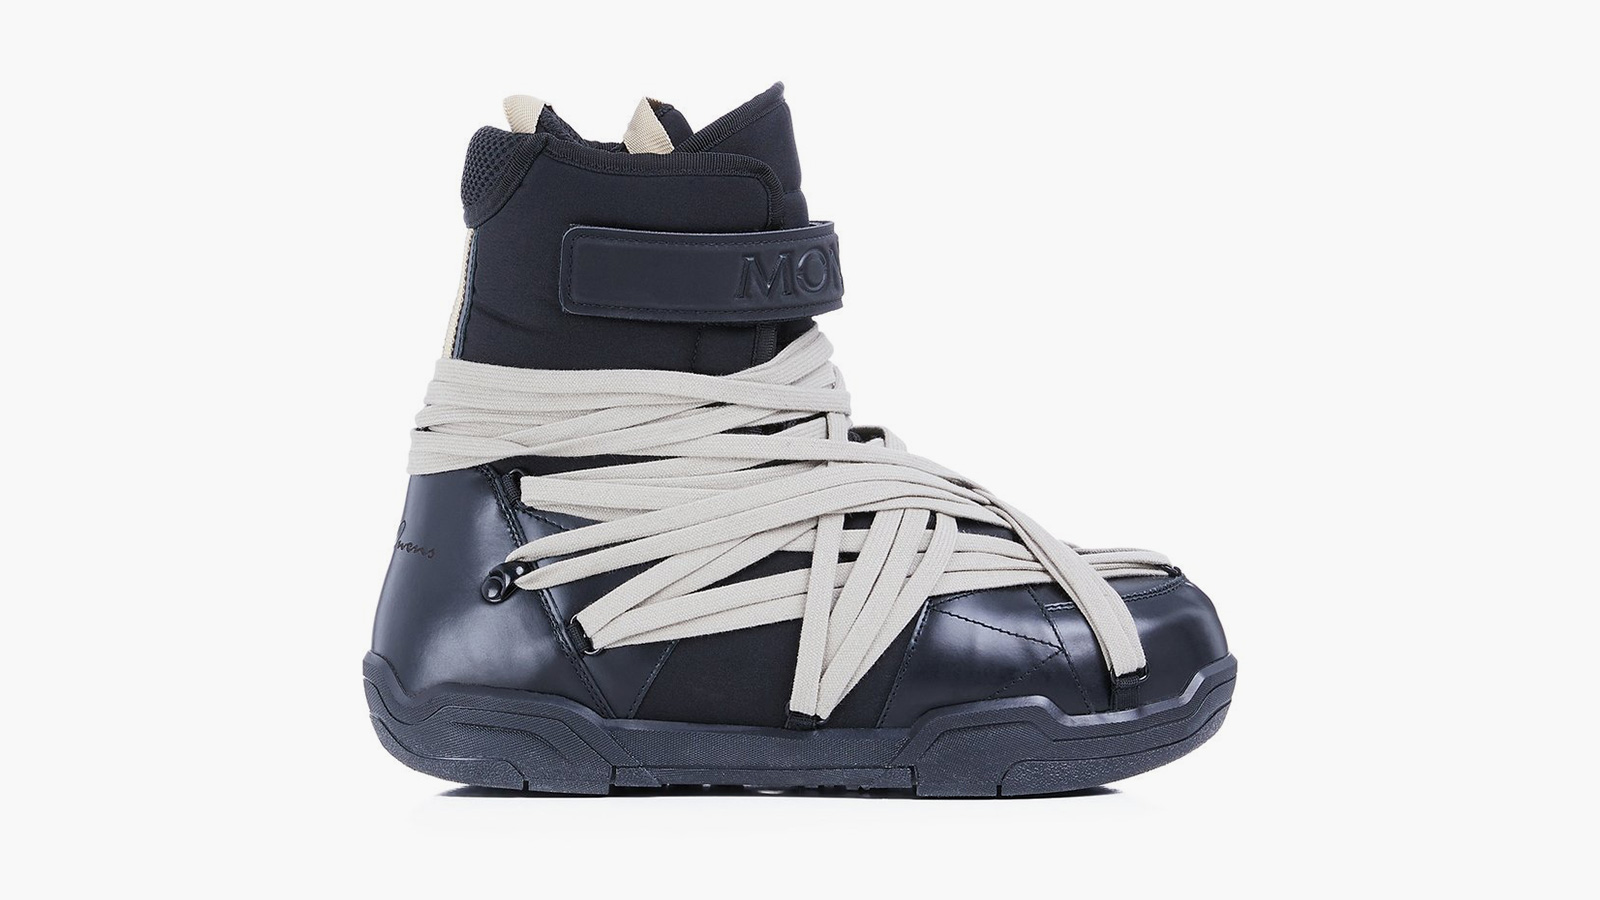 Rick Owens x Moncler Amber Canvas-Trimmed Leather Snow Boots